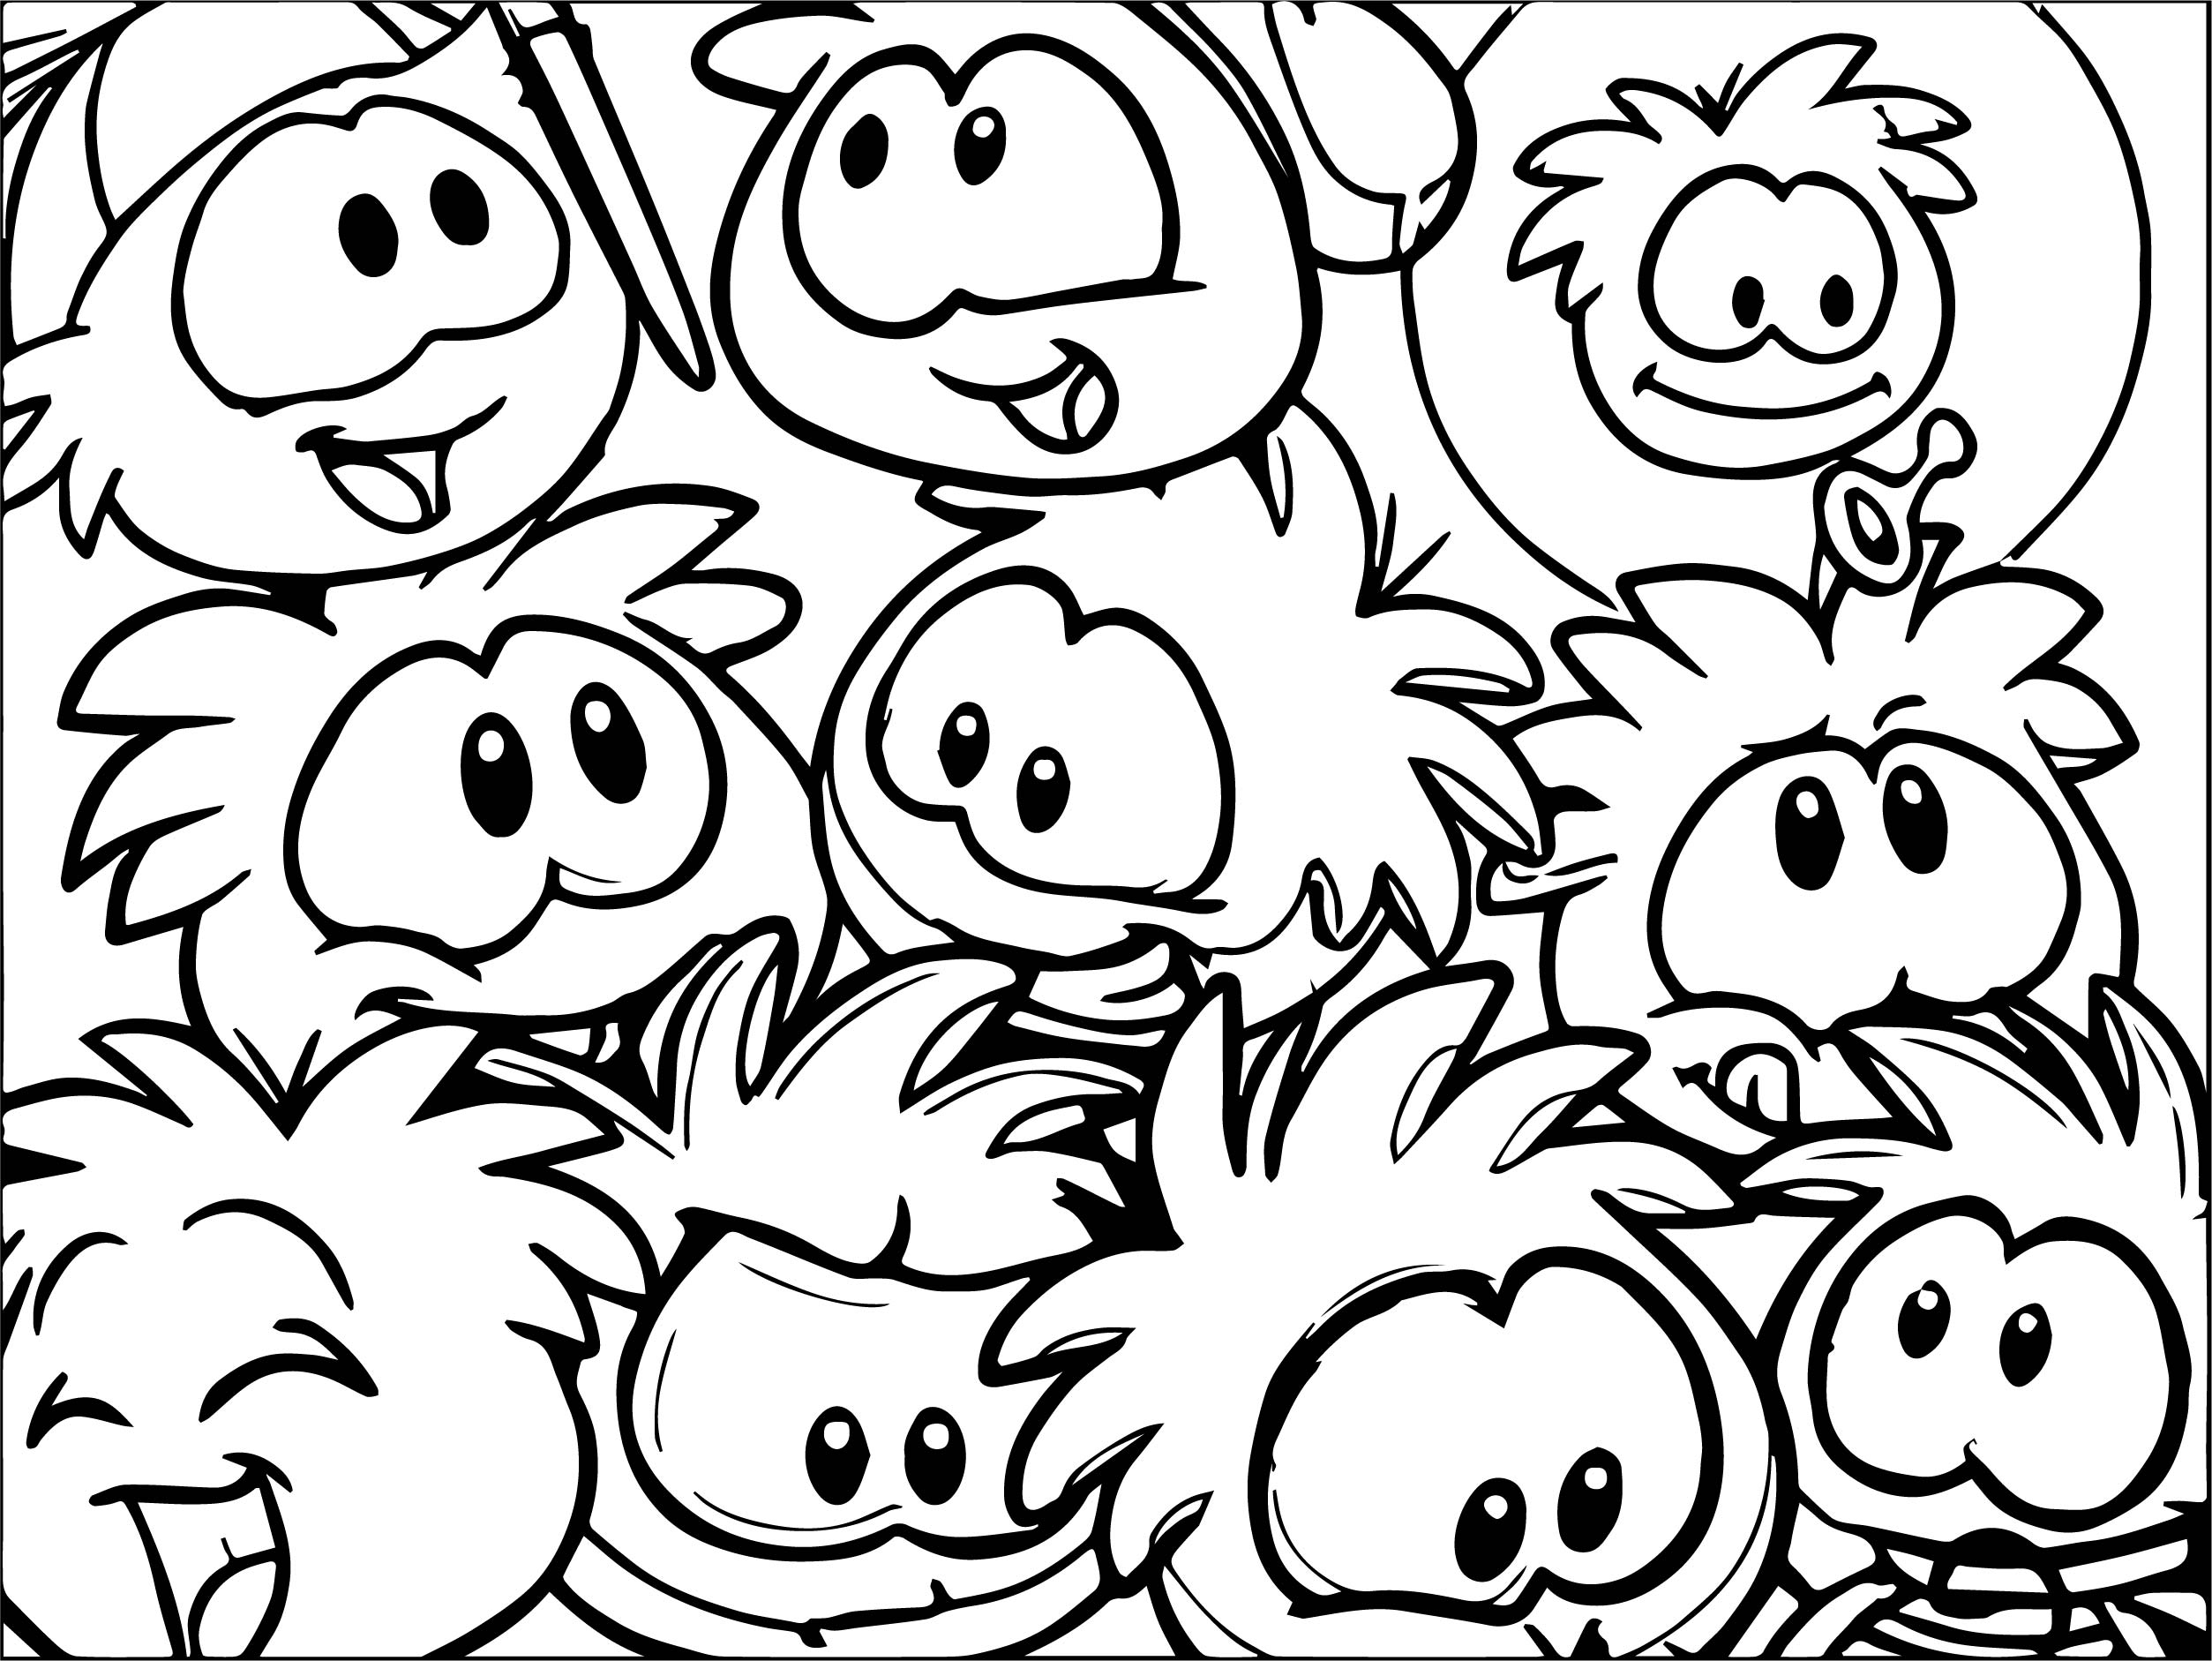 Club Penguin Coloring Page 11